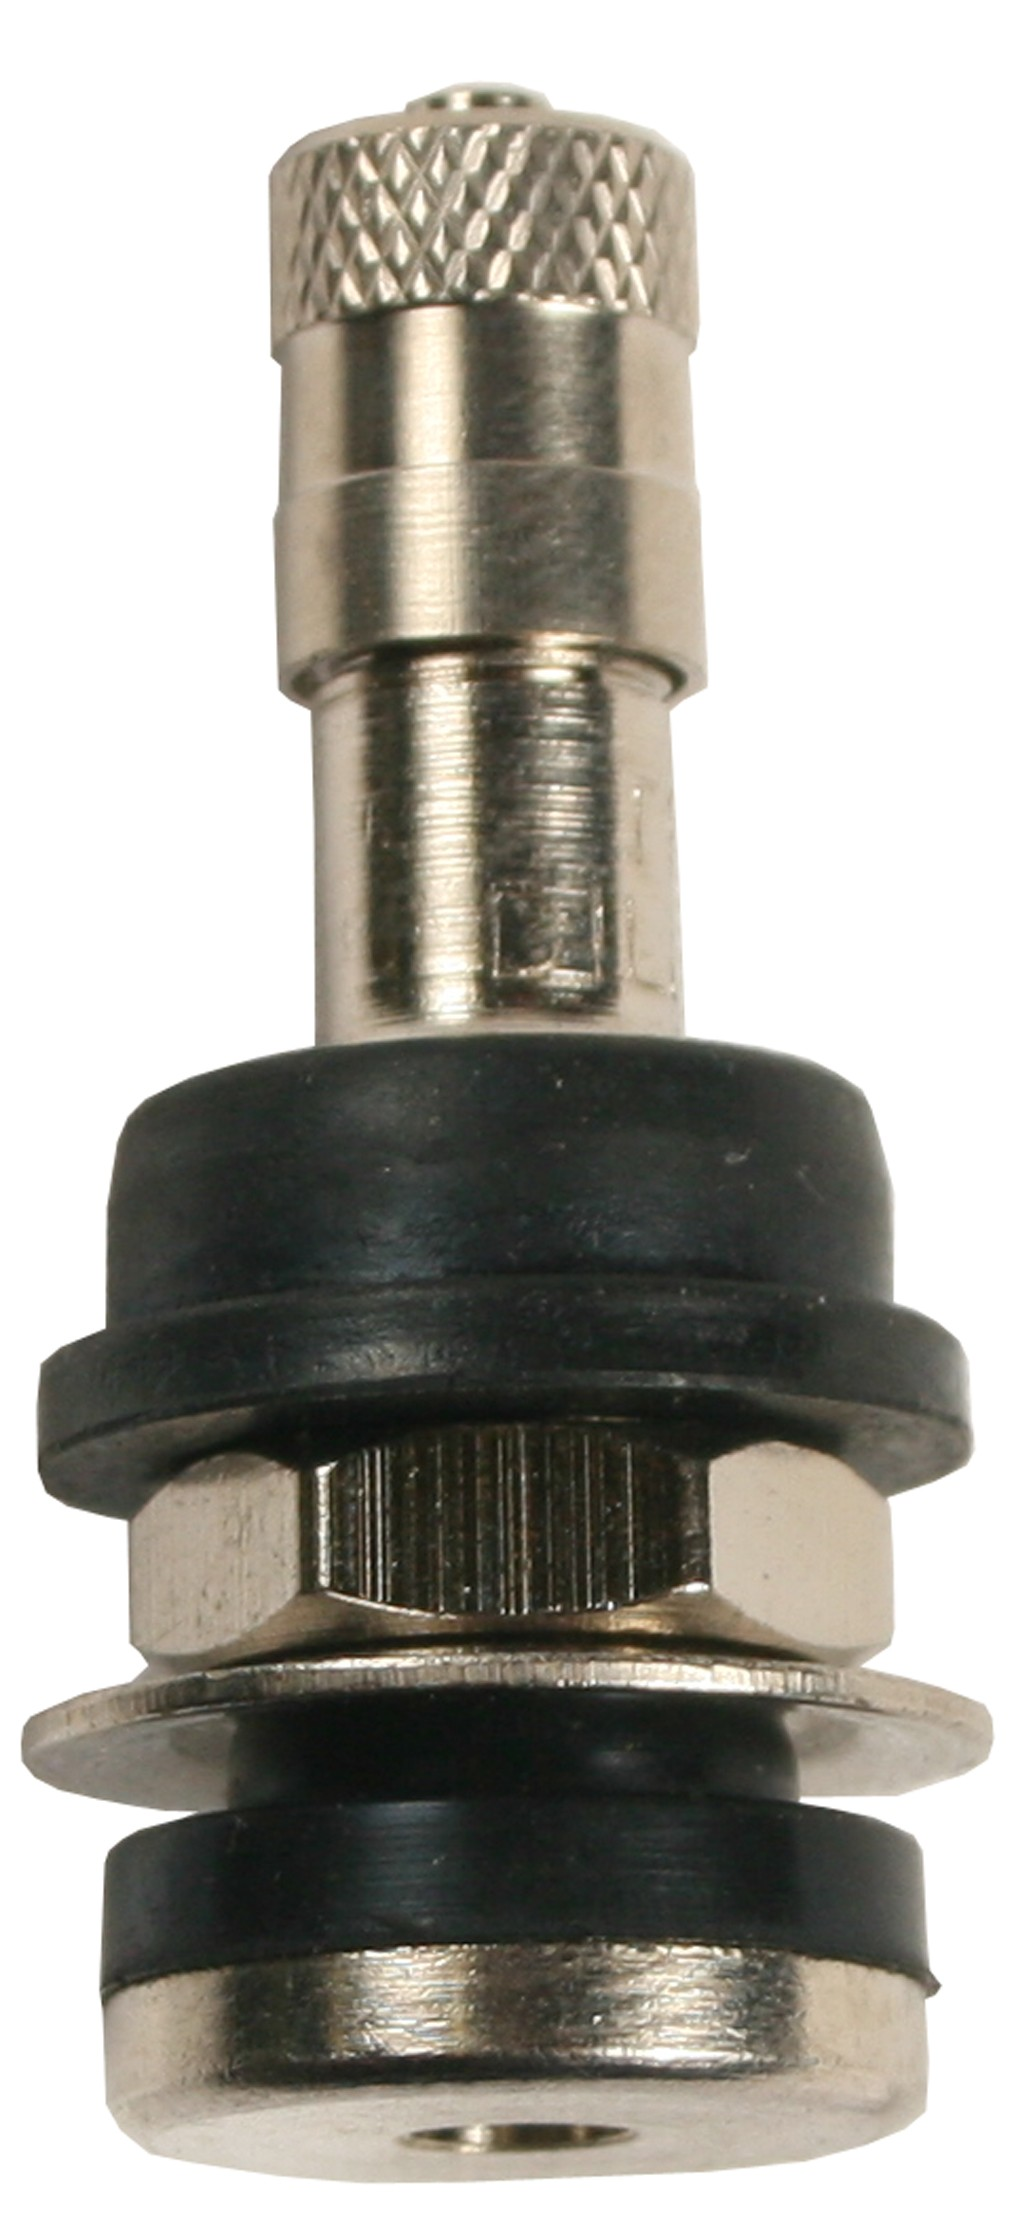 "1 1/4"" Metal Bolt-In Valve Stem, Fits 5/8"" Hole"